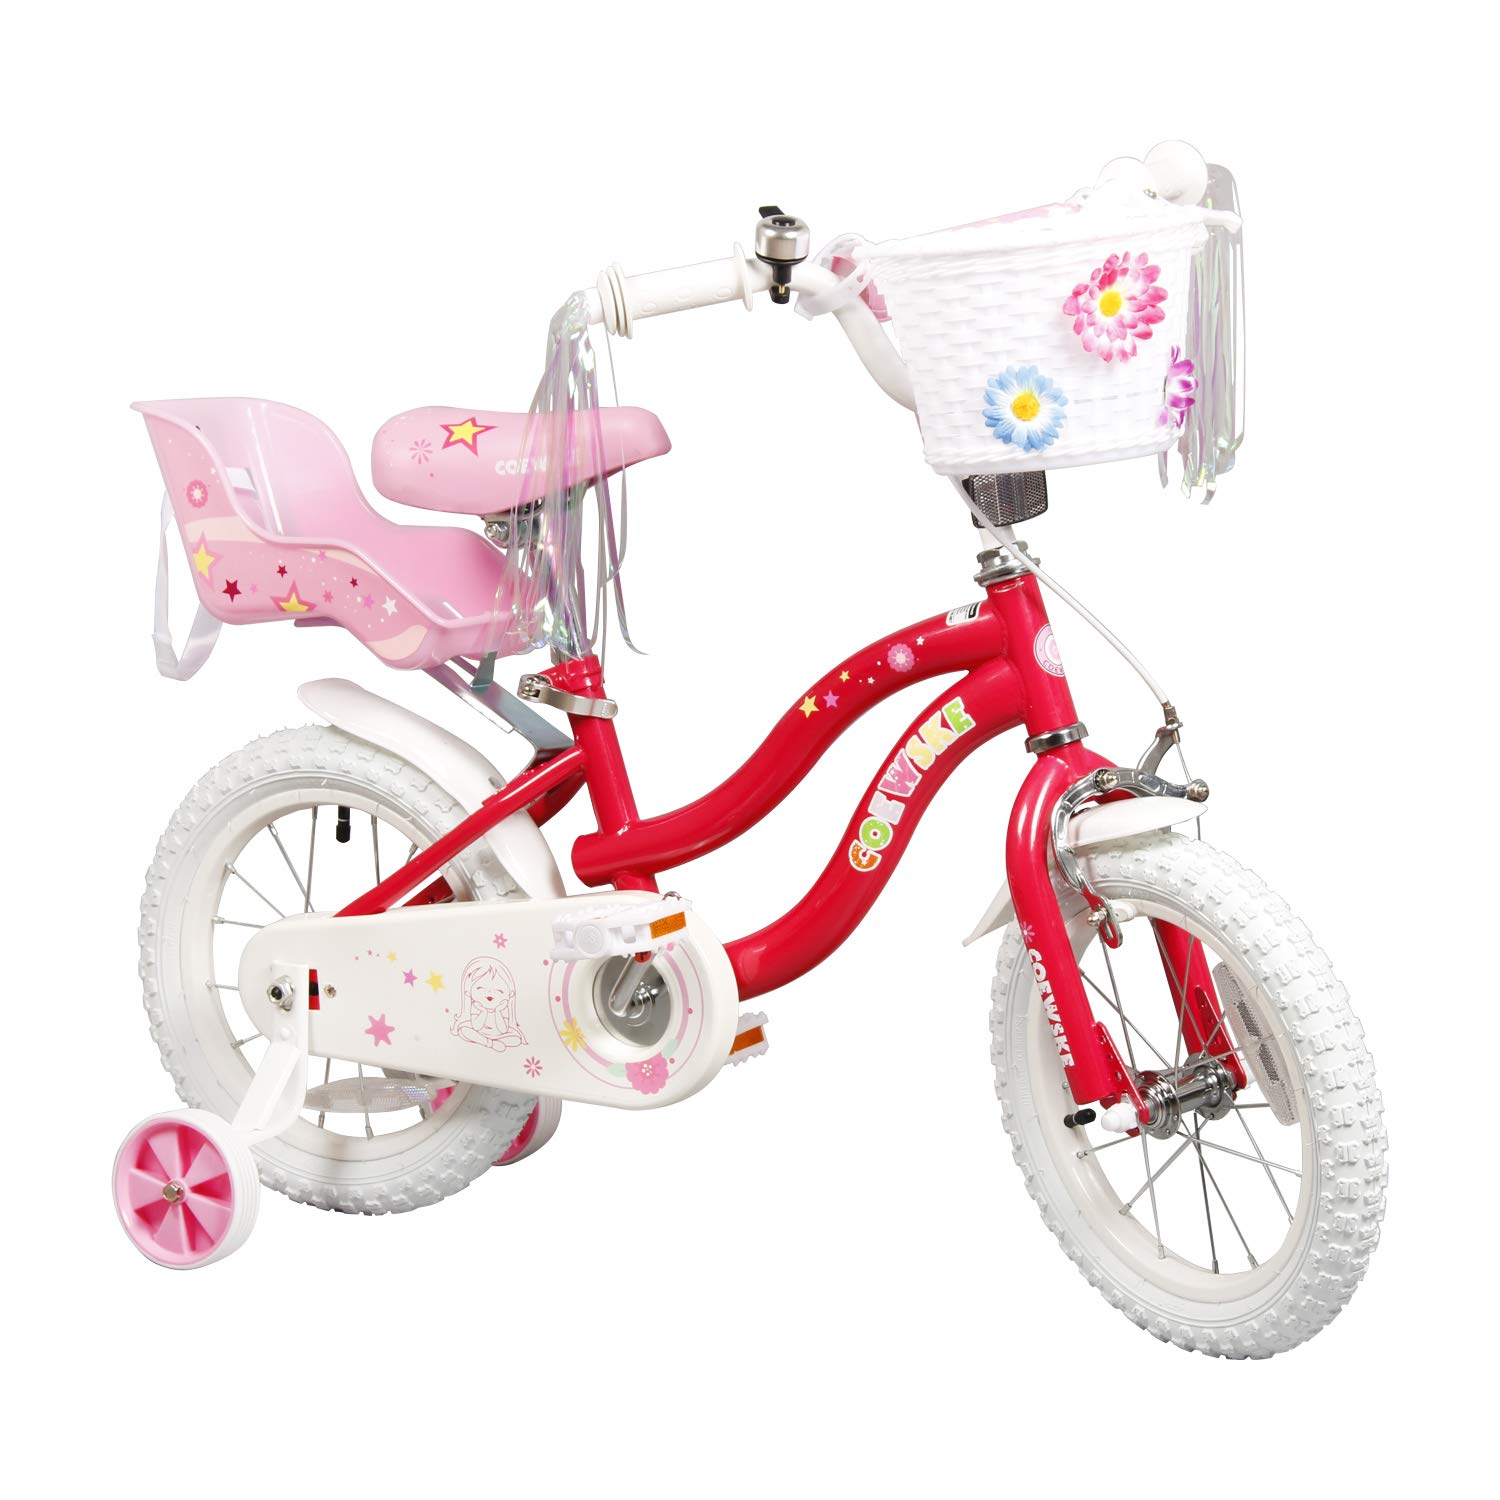 COEWSKE Kid's Bike Steel Frame Children Bicycle Little Princess Style 14-16 Inch with Training Wheel (Red, 16 Inch)